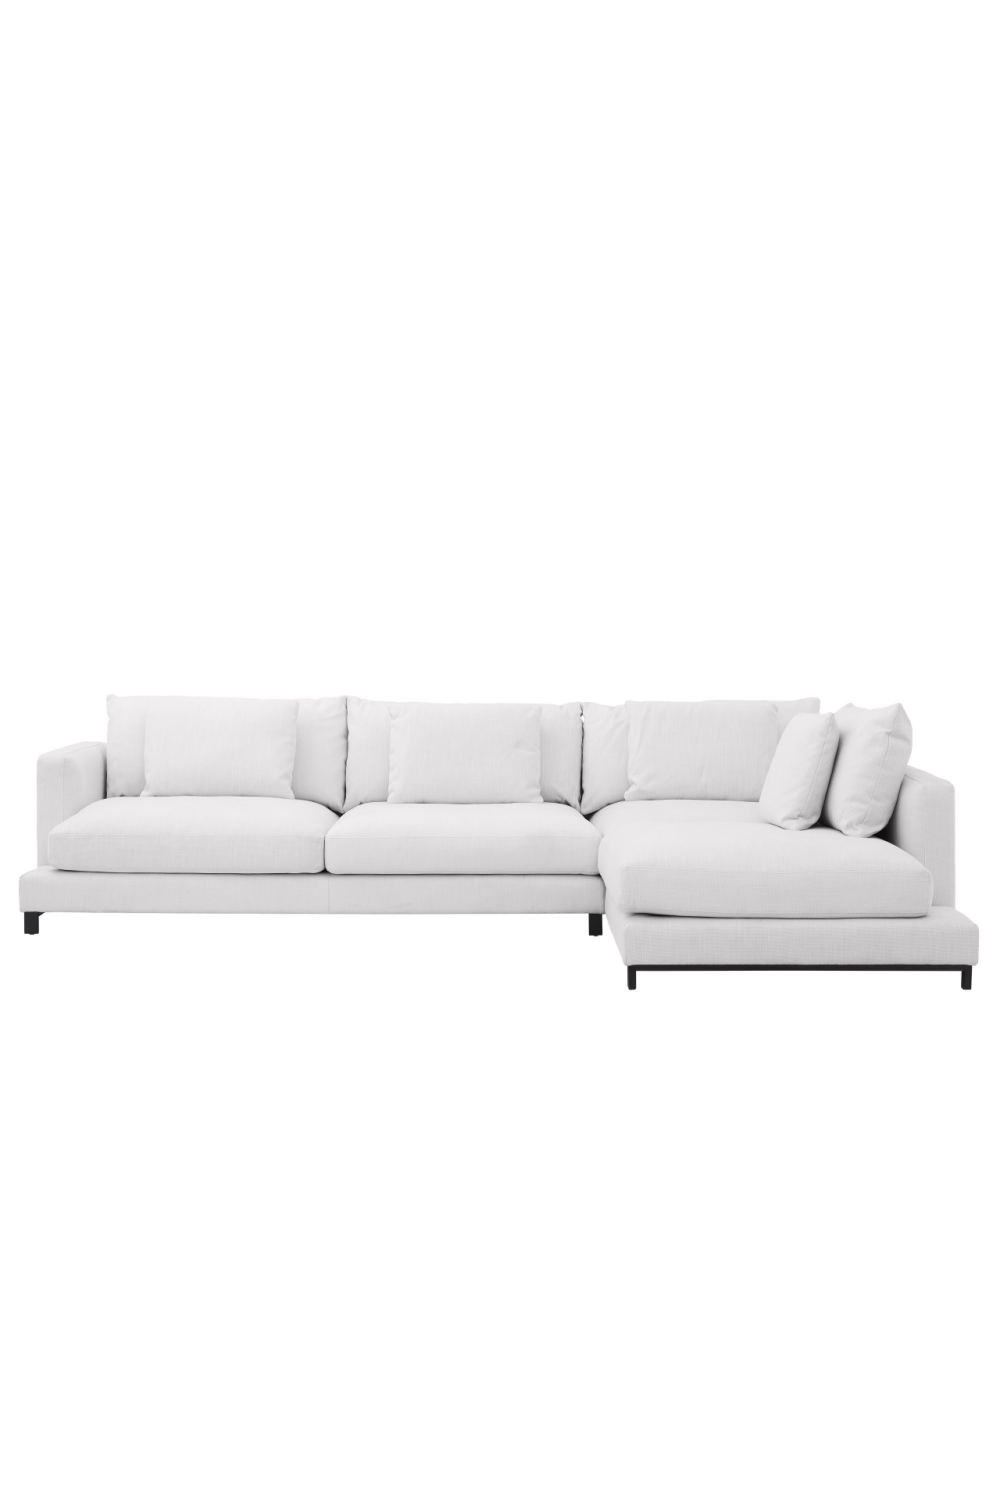 Avalon White Lounge Sofa | Eichholtz Burbury